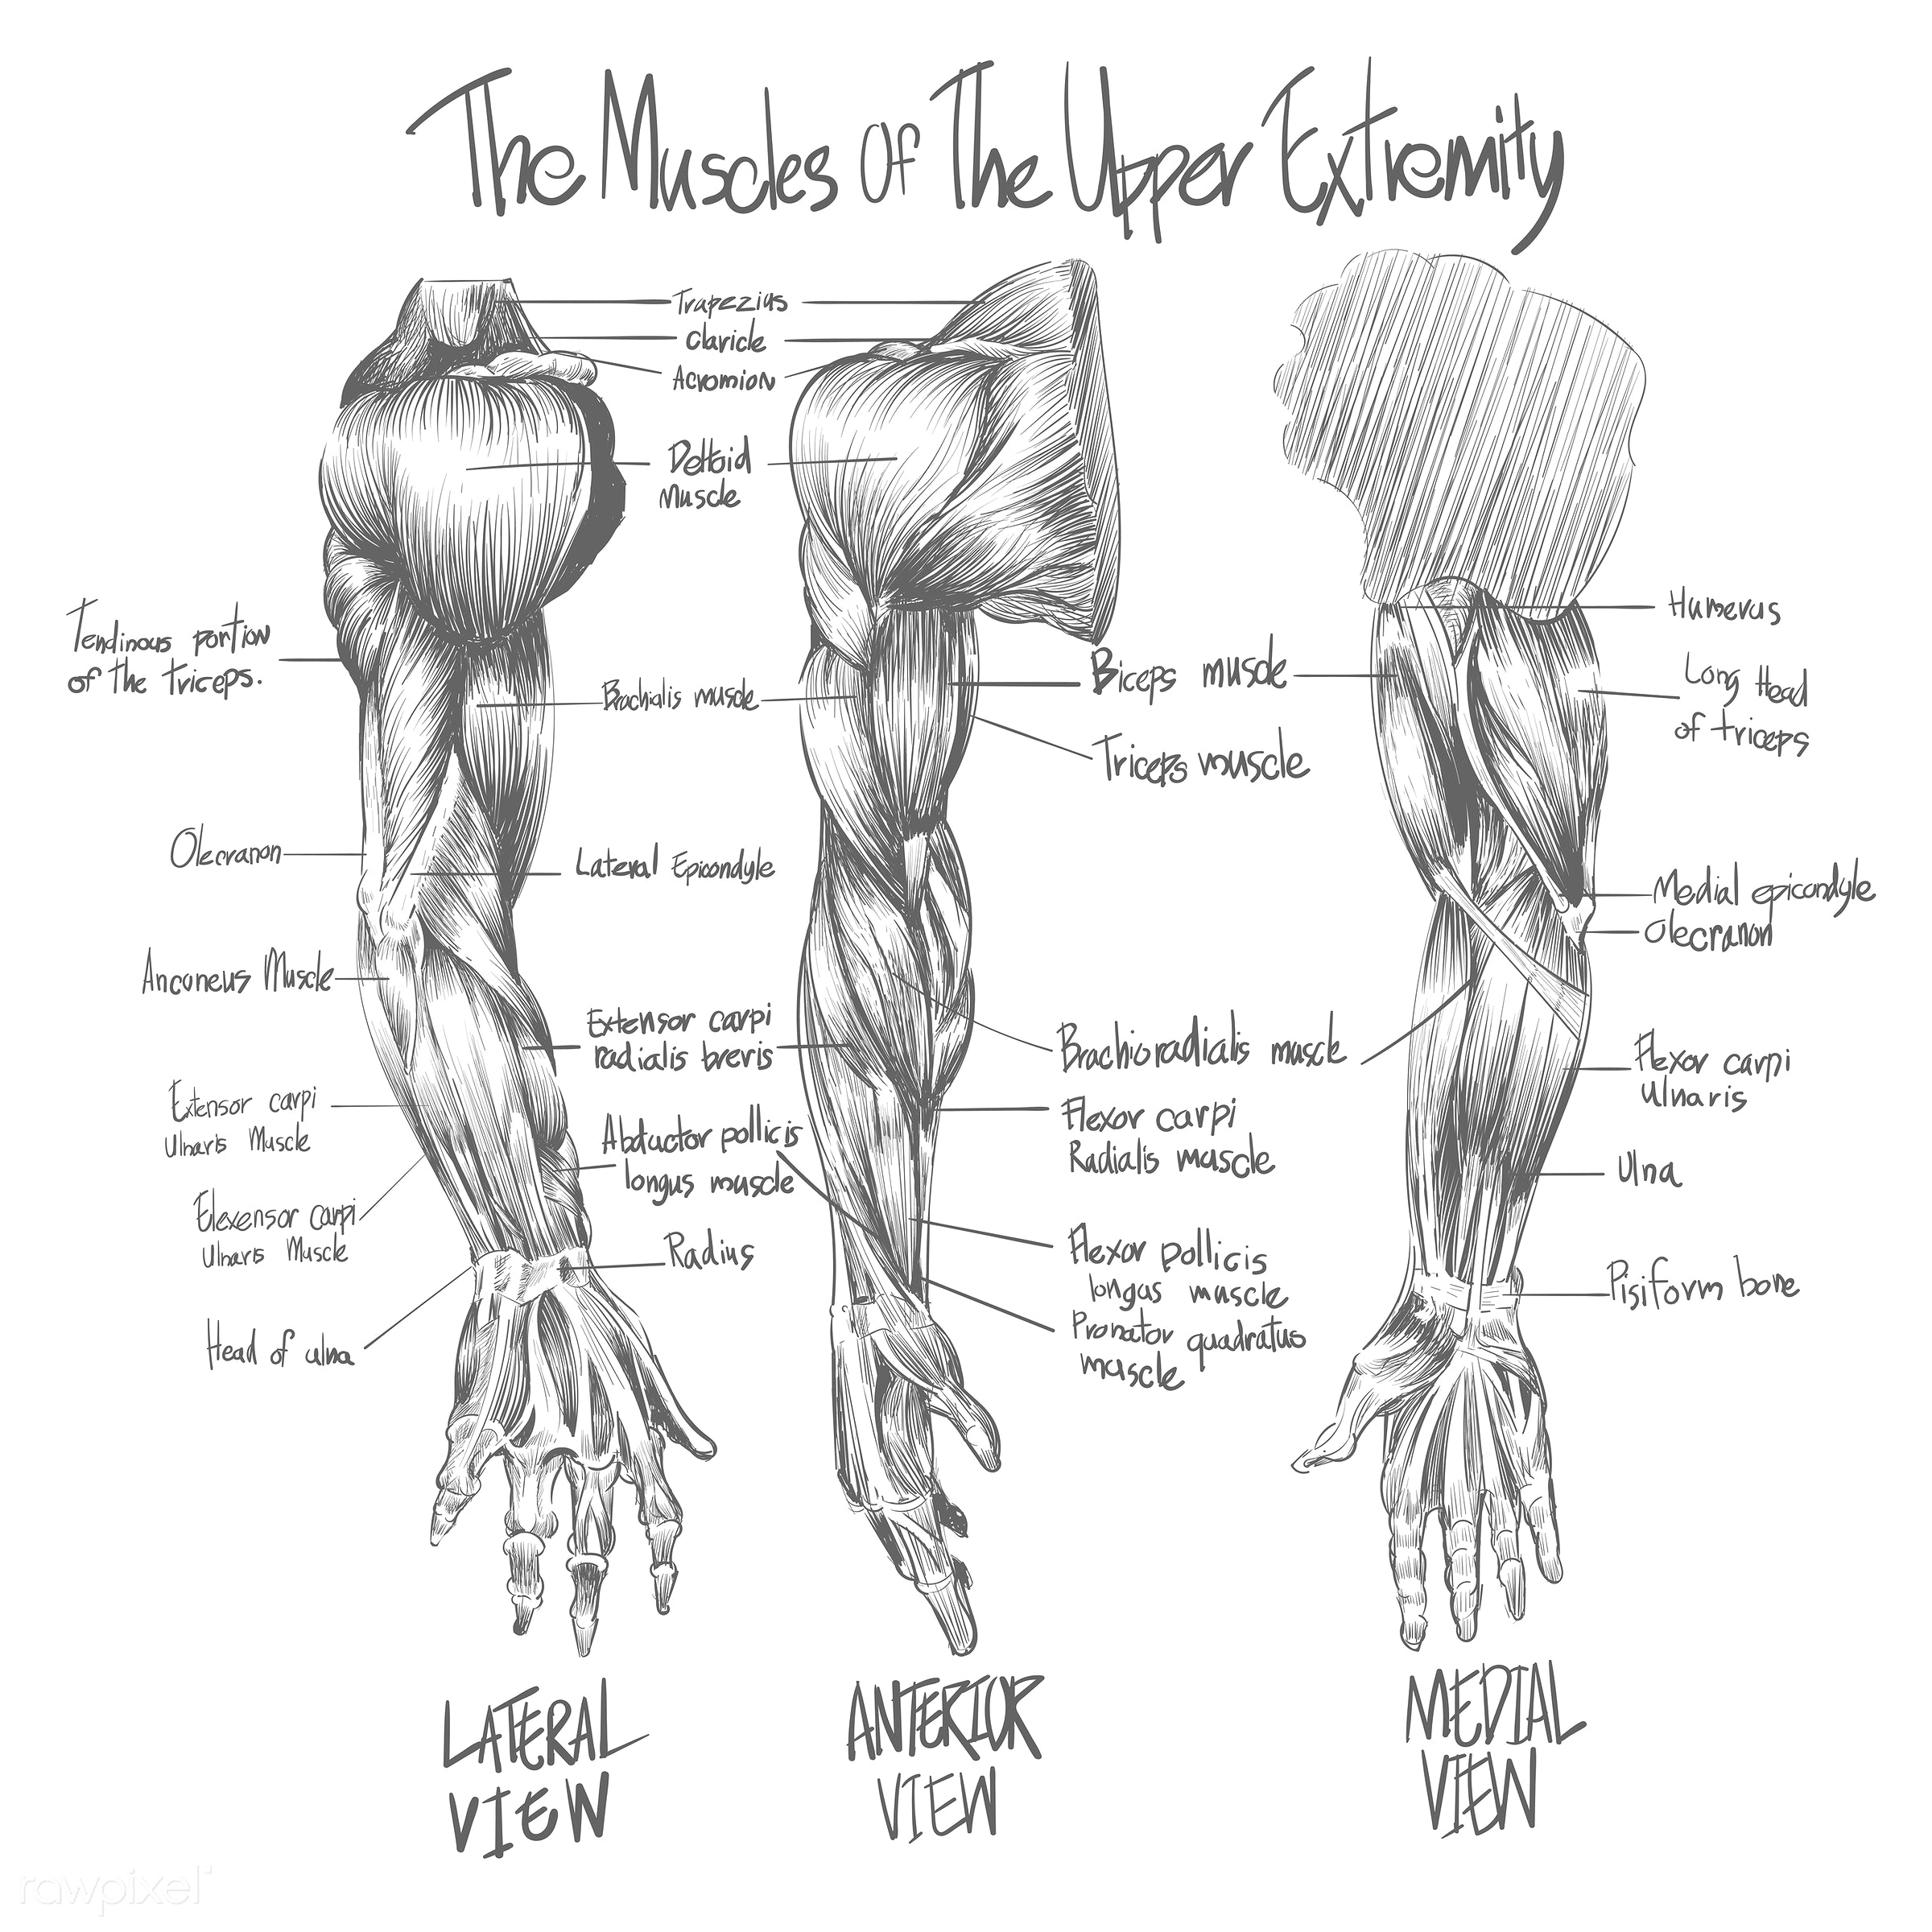 Sketch of Muscular system - ID: 66035